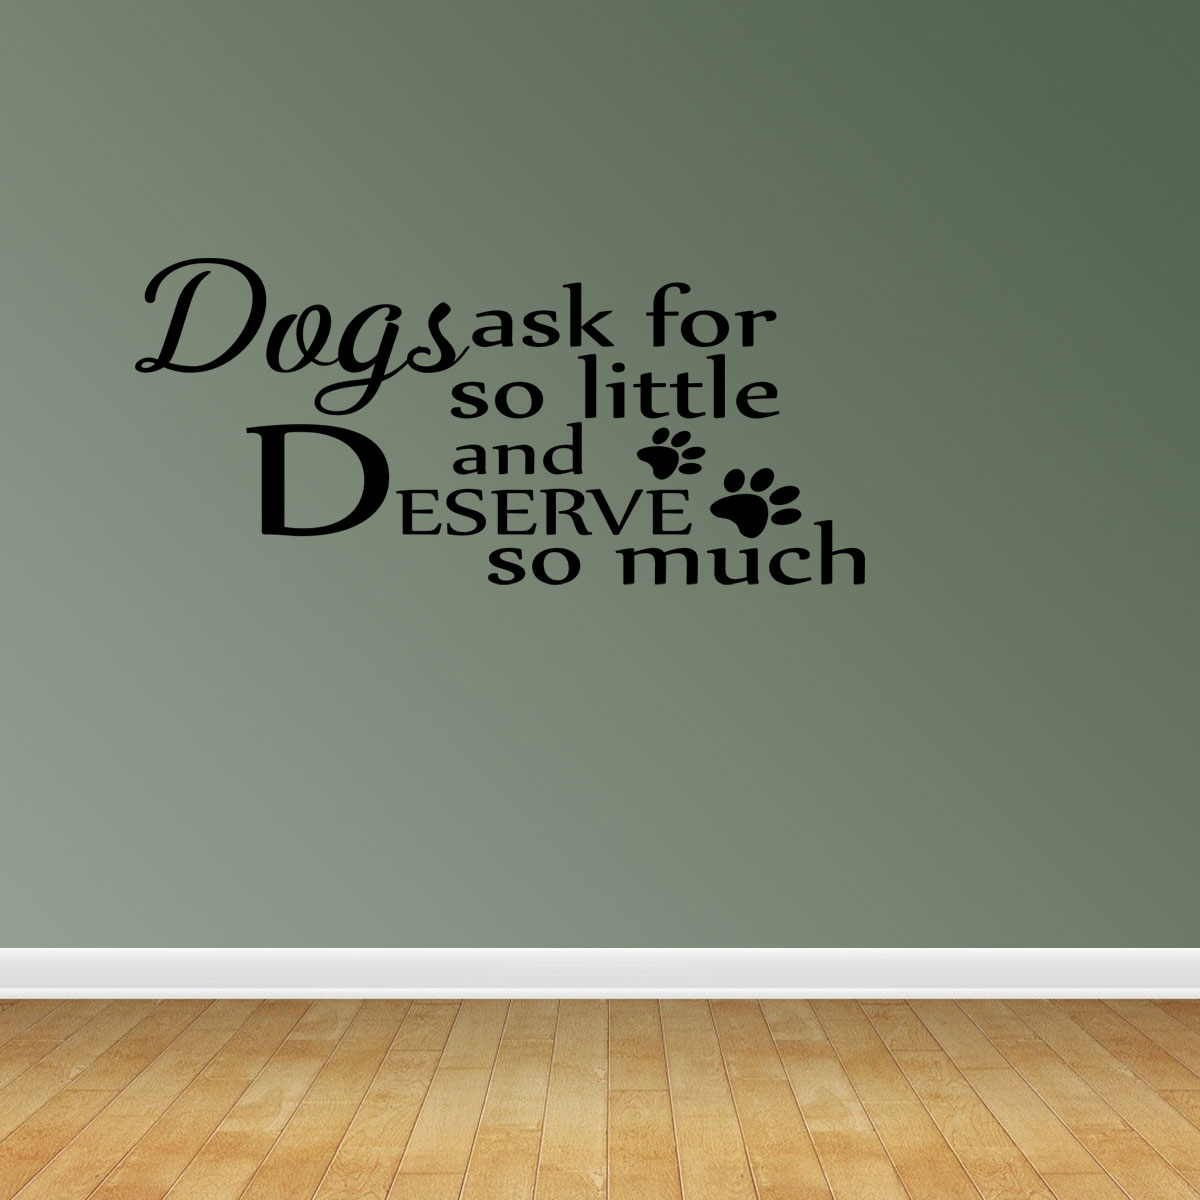 Dogs Ask Little Deserve Much Quote Vinyl Wall Decals Vinyl Decals Pet Owner Quote PC141